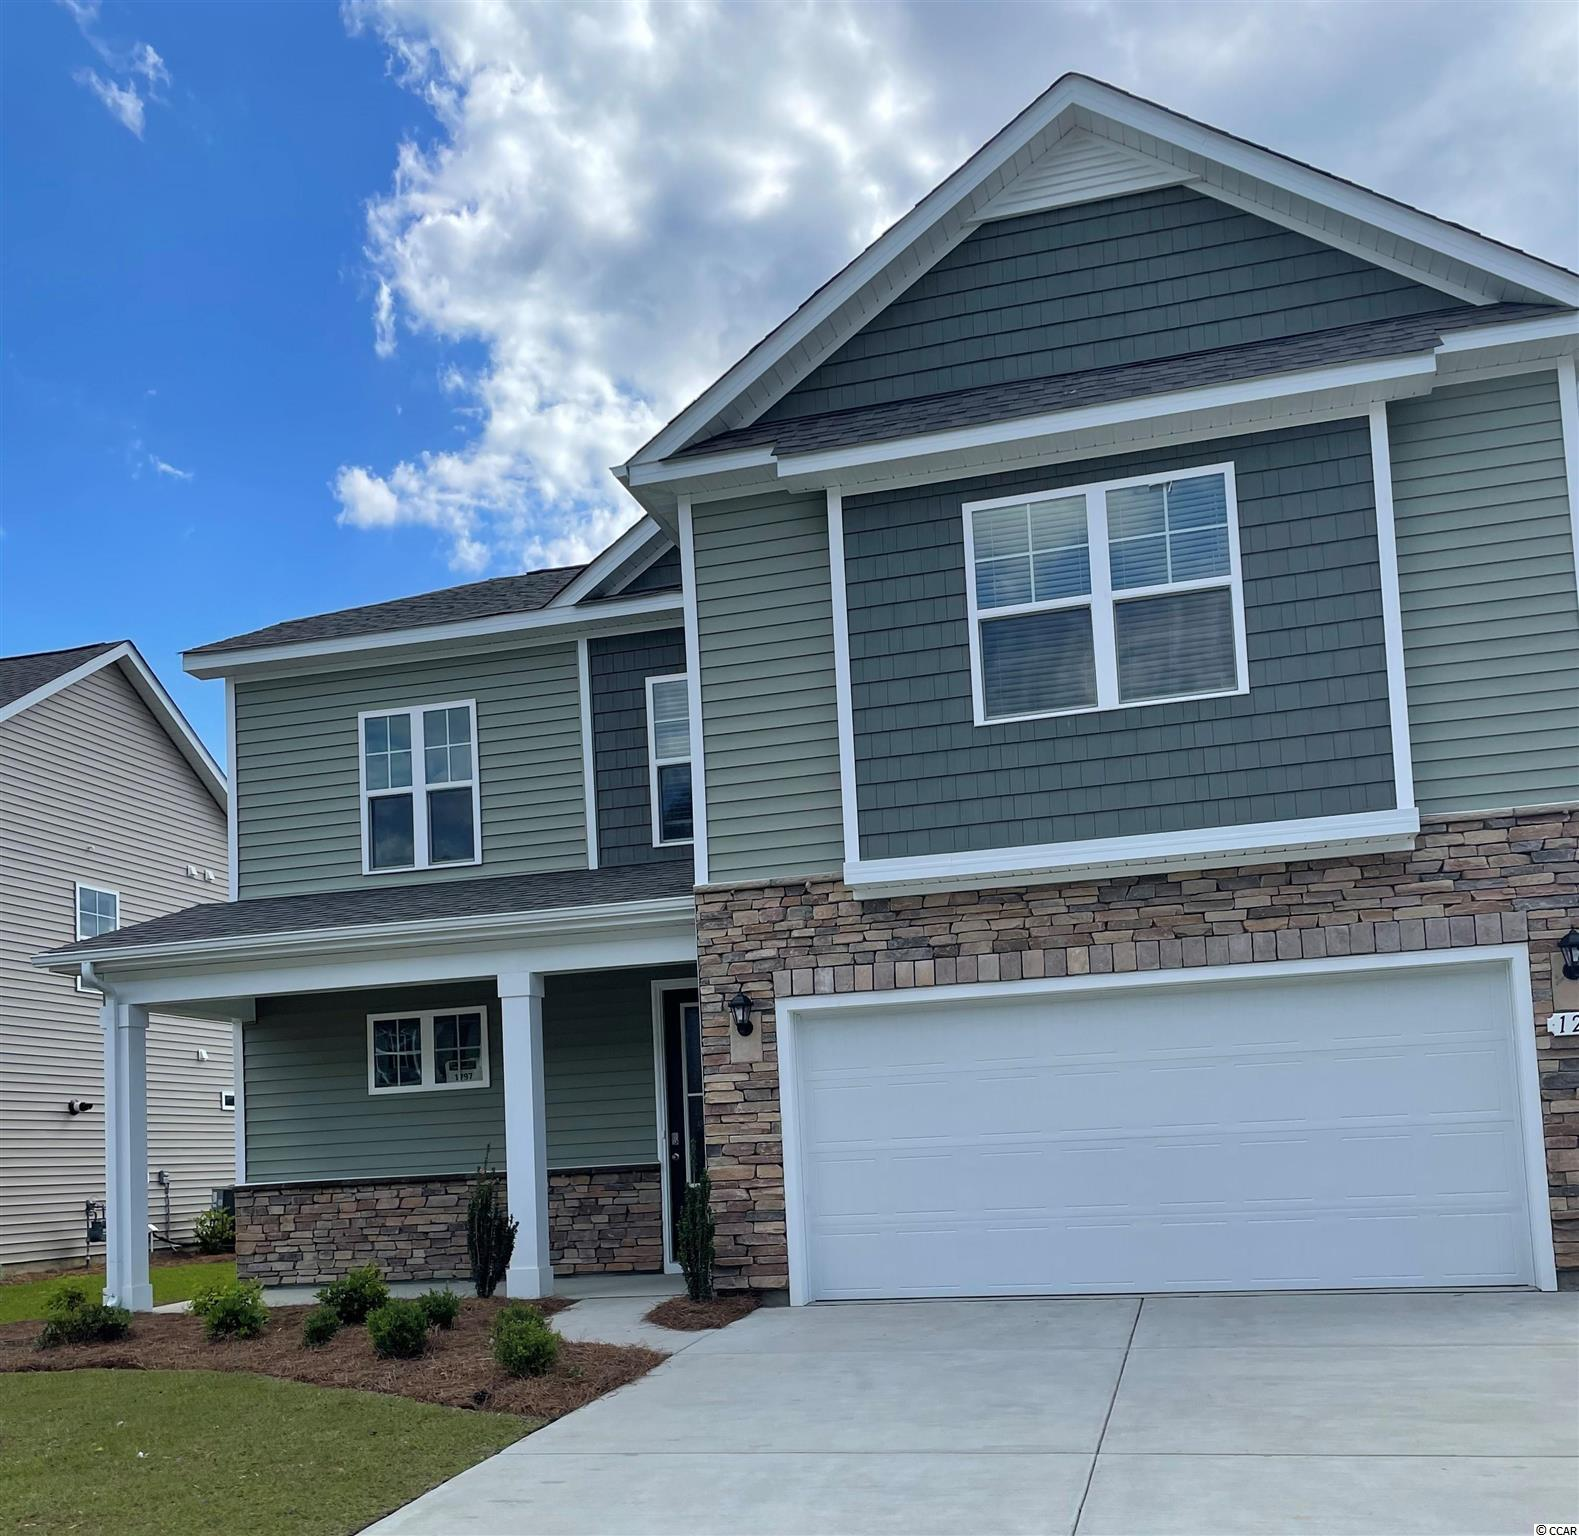 New phase now selling! Hidden Brooke is a beautiful community with an amenity that includes a pool with large deck area, clubhouse, exercise room, and fire pit overlooking the water. Minutes away from Highway 31 which provides quick and easy access to all of the Grand Strand's offerings: dining, entertainment, shopping, and golf! Tranquil setting just a short drive to the beach. This home has everything you are looking for! Our Belfort plan with a stacked stone elevation, 8 ft. entry door, and inviting front porch. Spacious kitchen with white painted cabinets, granite countertops, a large island overlooking the family room, spacious pantry, and stainless Whirlpool appliances. Beautiful laminate wood flooring throughout the main living areas with tile in the bathrooms and laundry room. Sliding glass doors off the dining area lead to the rear screen porch creating a seamless transition from indoor to outdoor living. First floor primary bedroom suite with extension along with a large shower, dual vanity, walk-in closet, and a separate linen closet for additional storage. Three nicely sized bedrooms and a versatile loft space are upstairs! It gets better- this is America's Smart Home! Ask an agent today about our industry leading smart home technology package that is included in all of our new homes. *Photos are of a similar Belfort home. (Home and community information, including pricing, included features, terms, availability and amenities, are subject to change prior to sale at any time without notice or obligation. Square footages are approximate. Pictures, photographs, colors, features, and sizes are for illustration purposes only and will vary from the homes as built. Equal housing opportunity builder.)